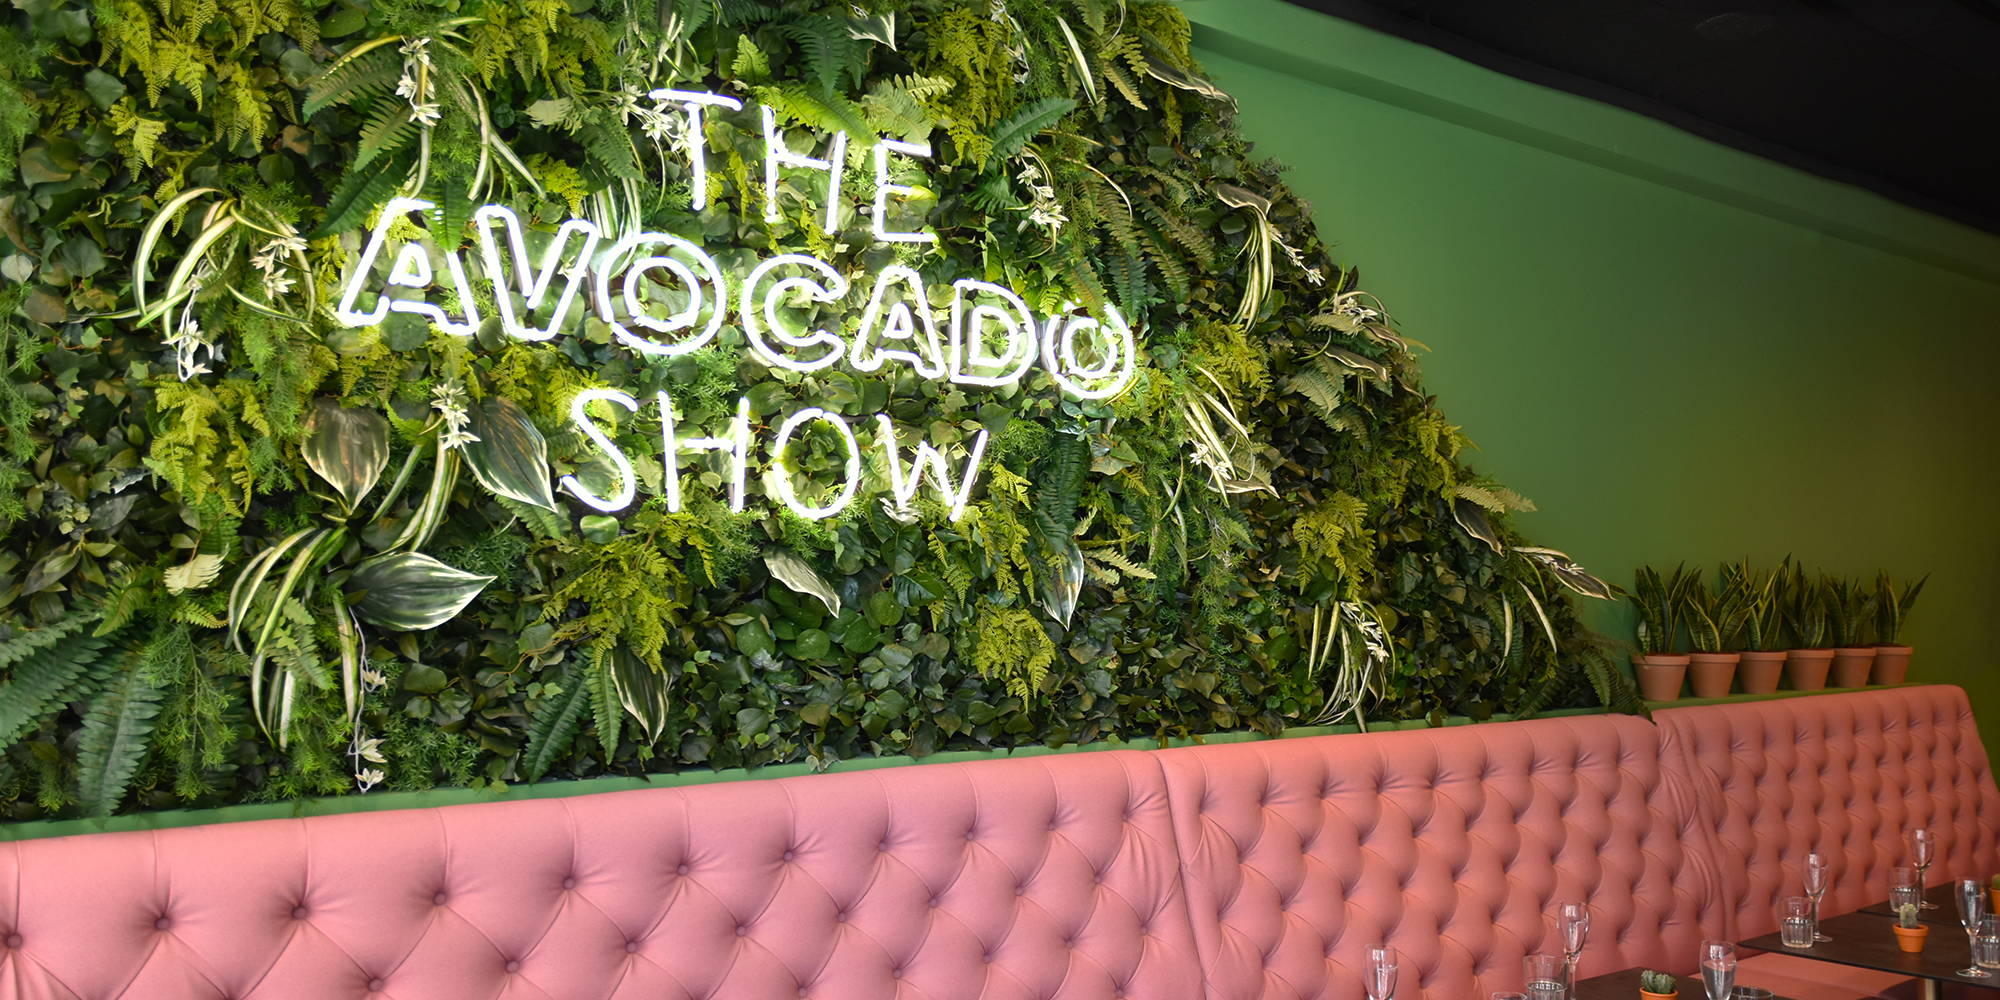 Welcome to The Avocado Show